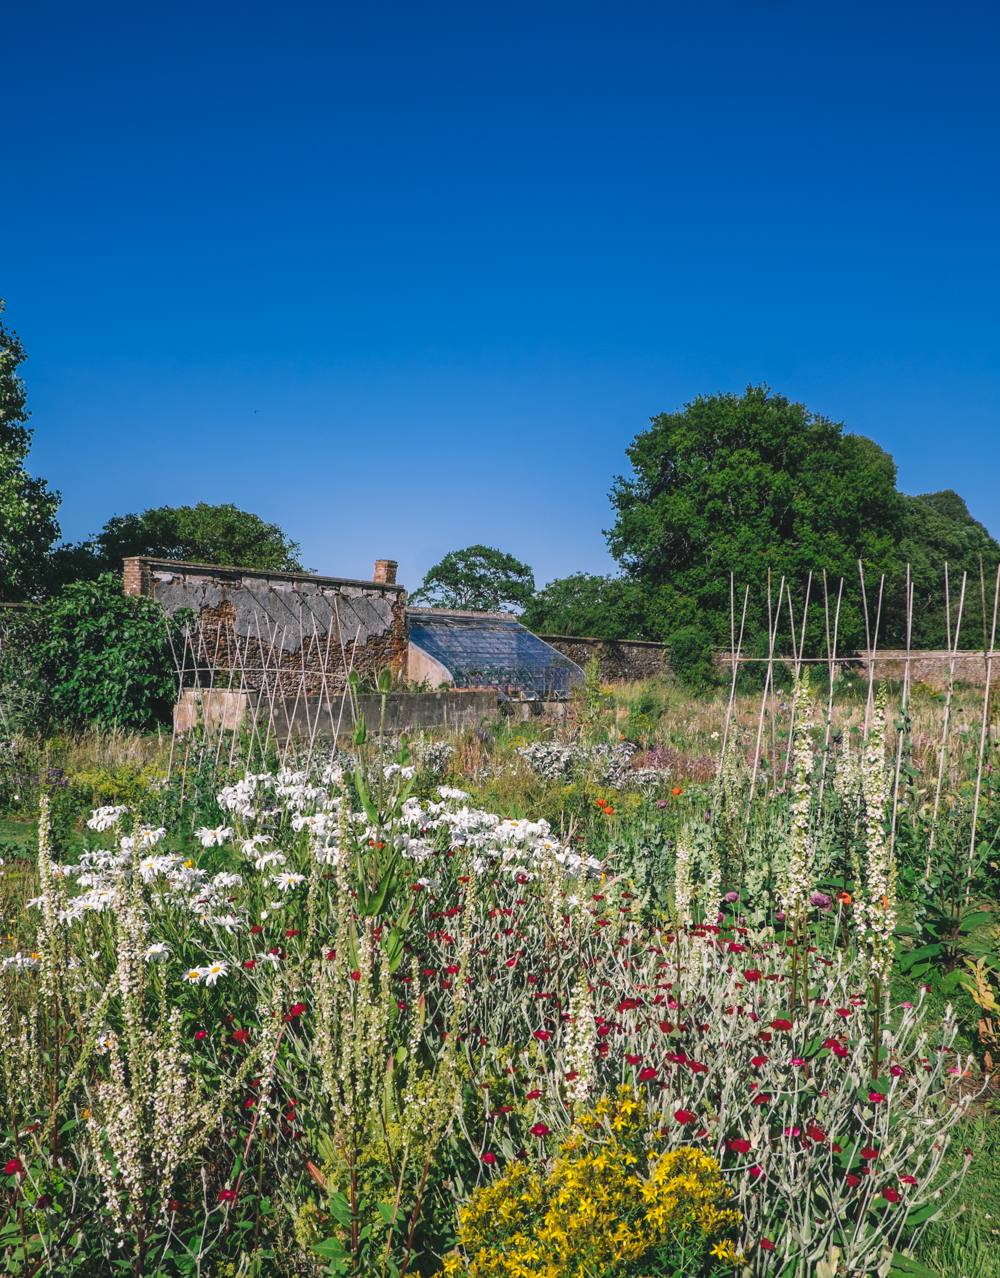 The Walled Garden at Harptree Court